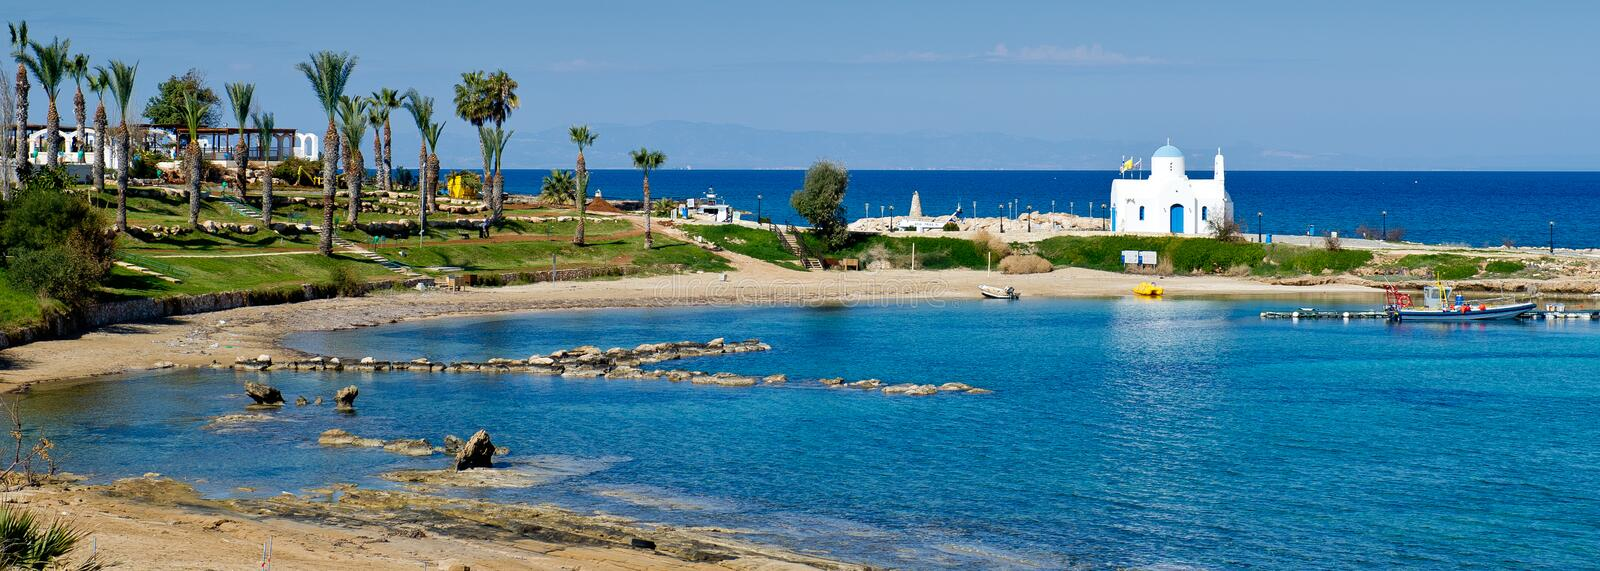 Plage de Kalamies, protaras, Chypre 2 photo stock